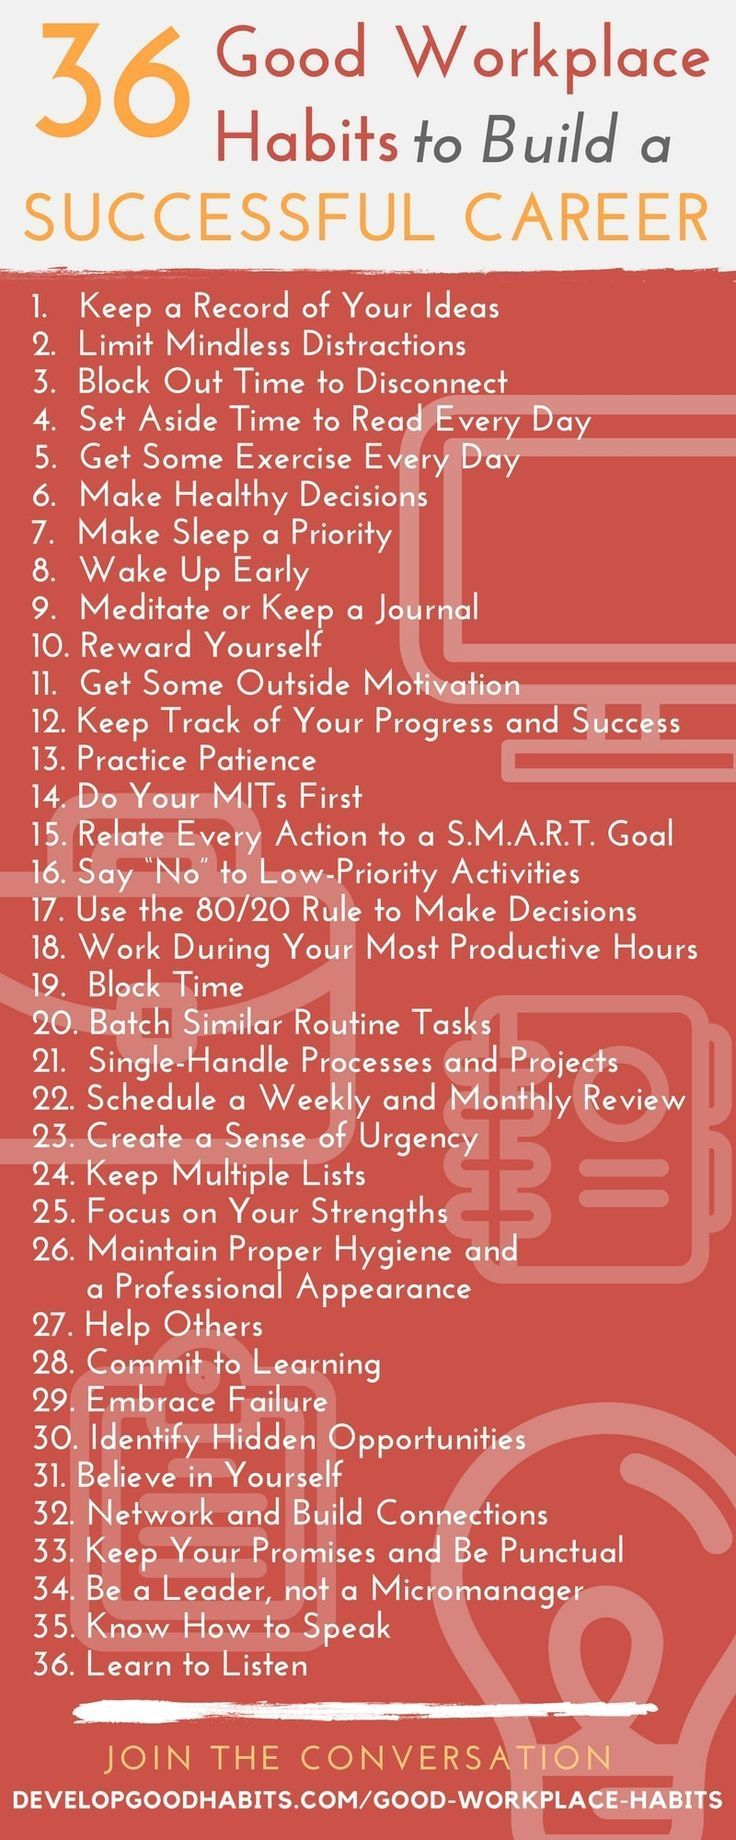 36 good workplace habits to build a successful career work habits to build unstoppable success - Successful Career How To Be Successful In Career In Life